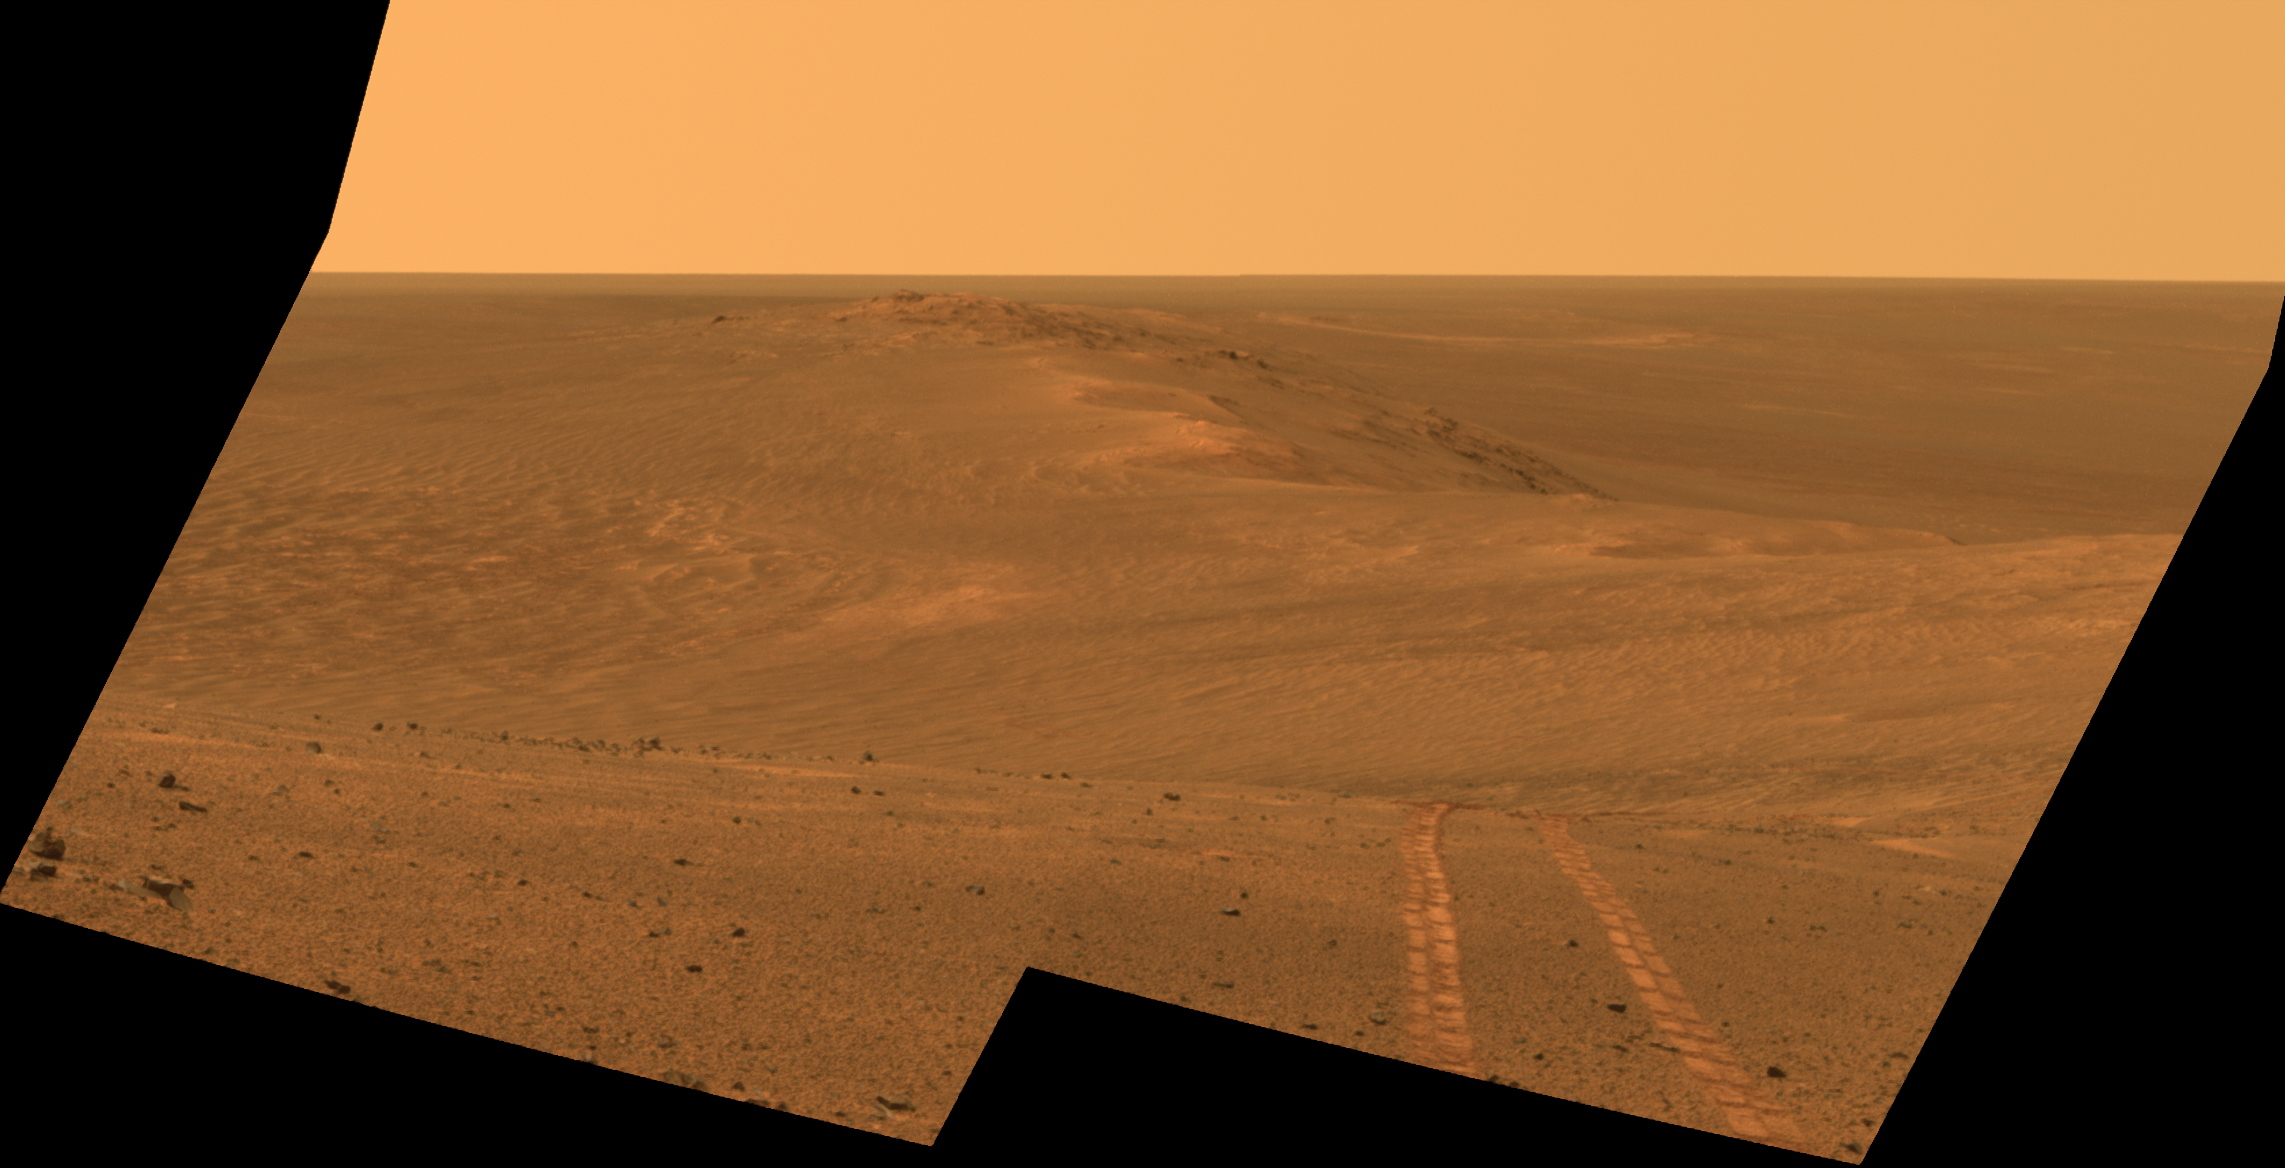 Mars Rover Opportunity S Vista Includes Long Tracks Nasa